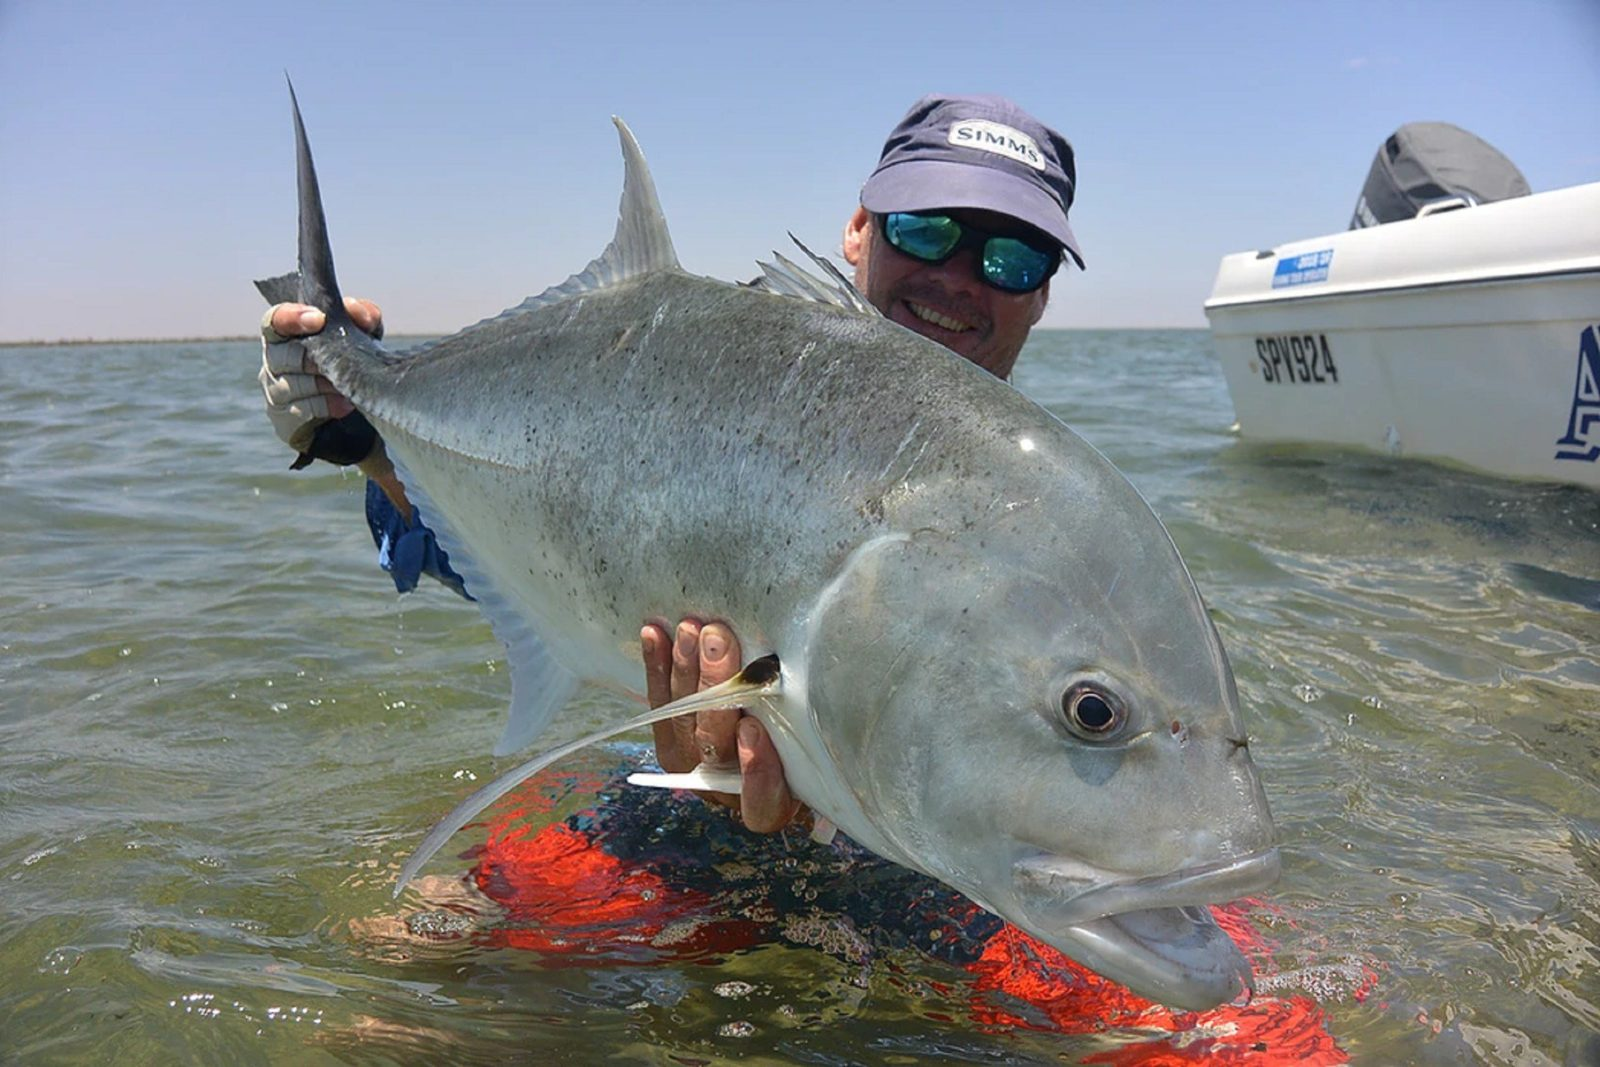 Ningaloo Fly Fishing, Exmouth, Western Australia